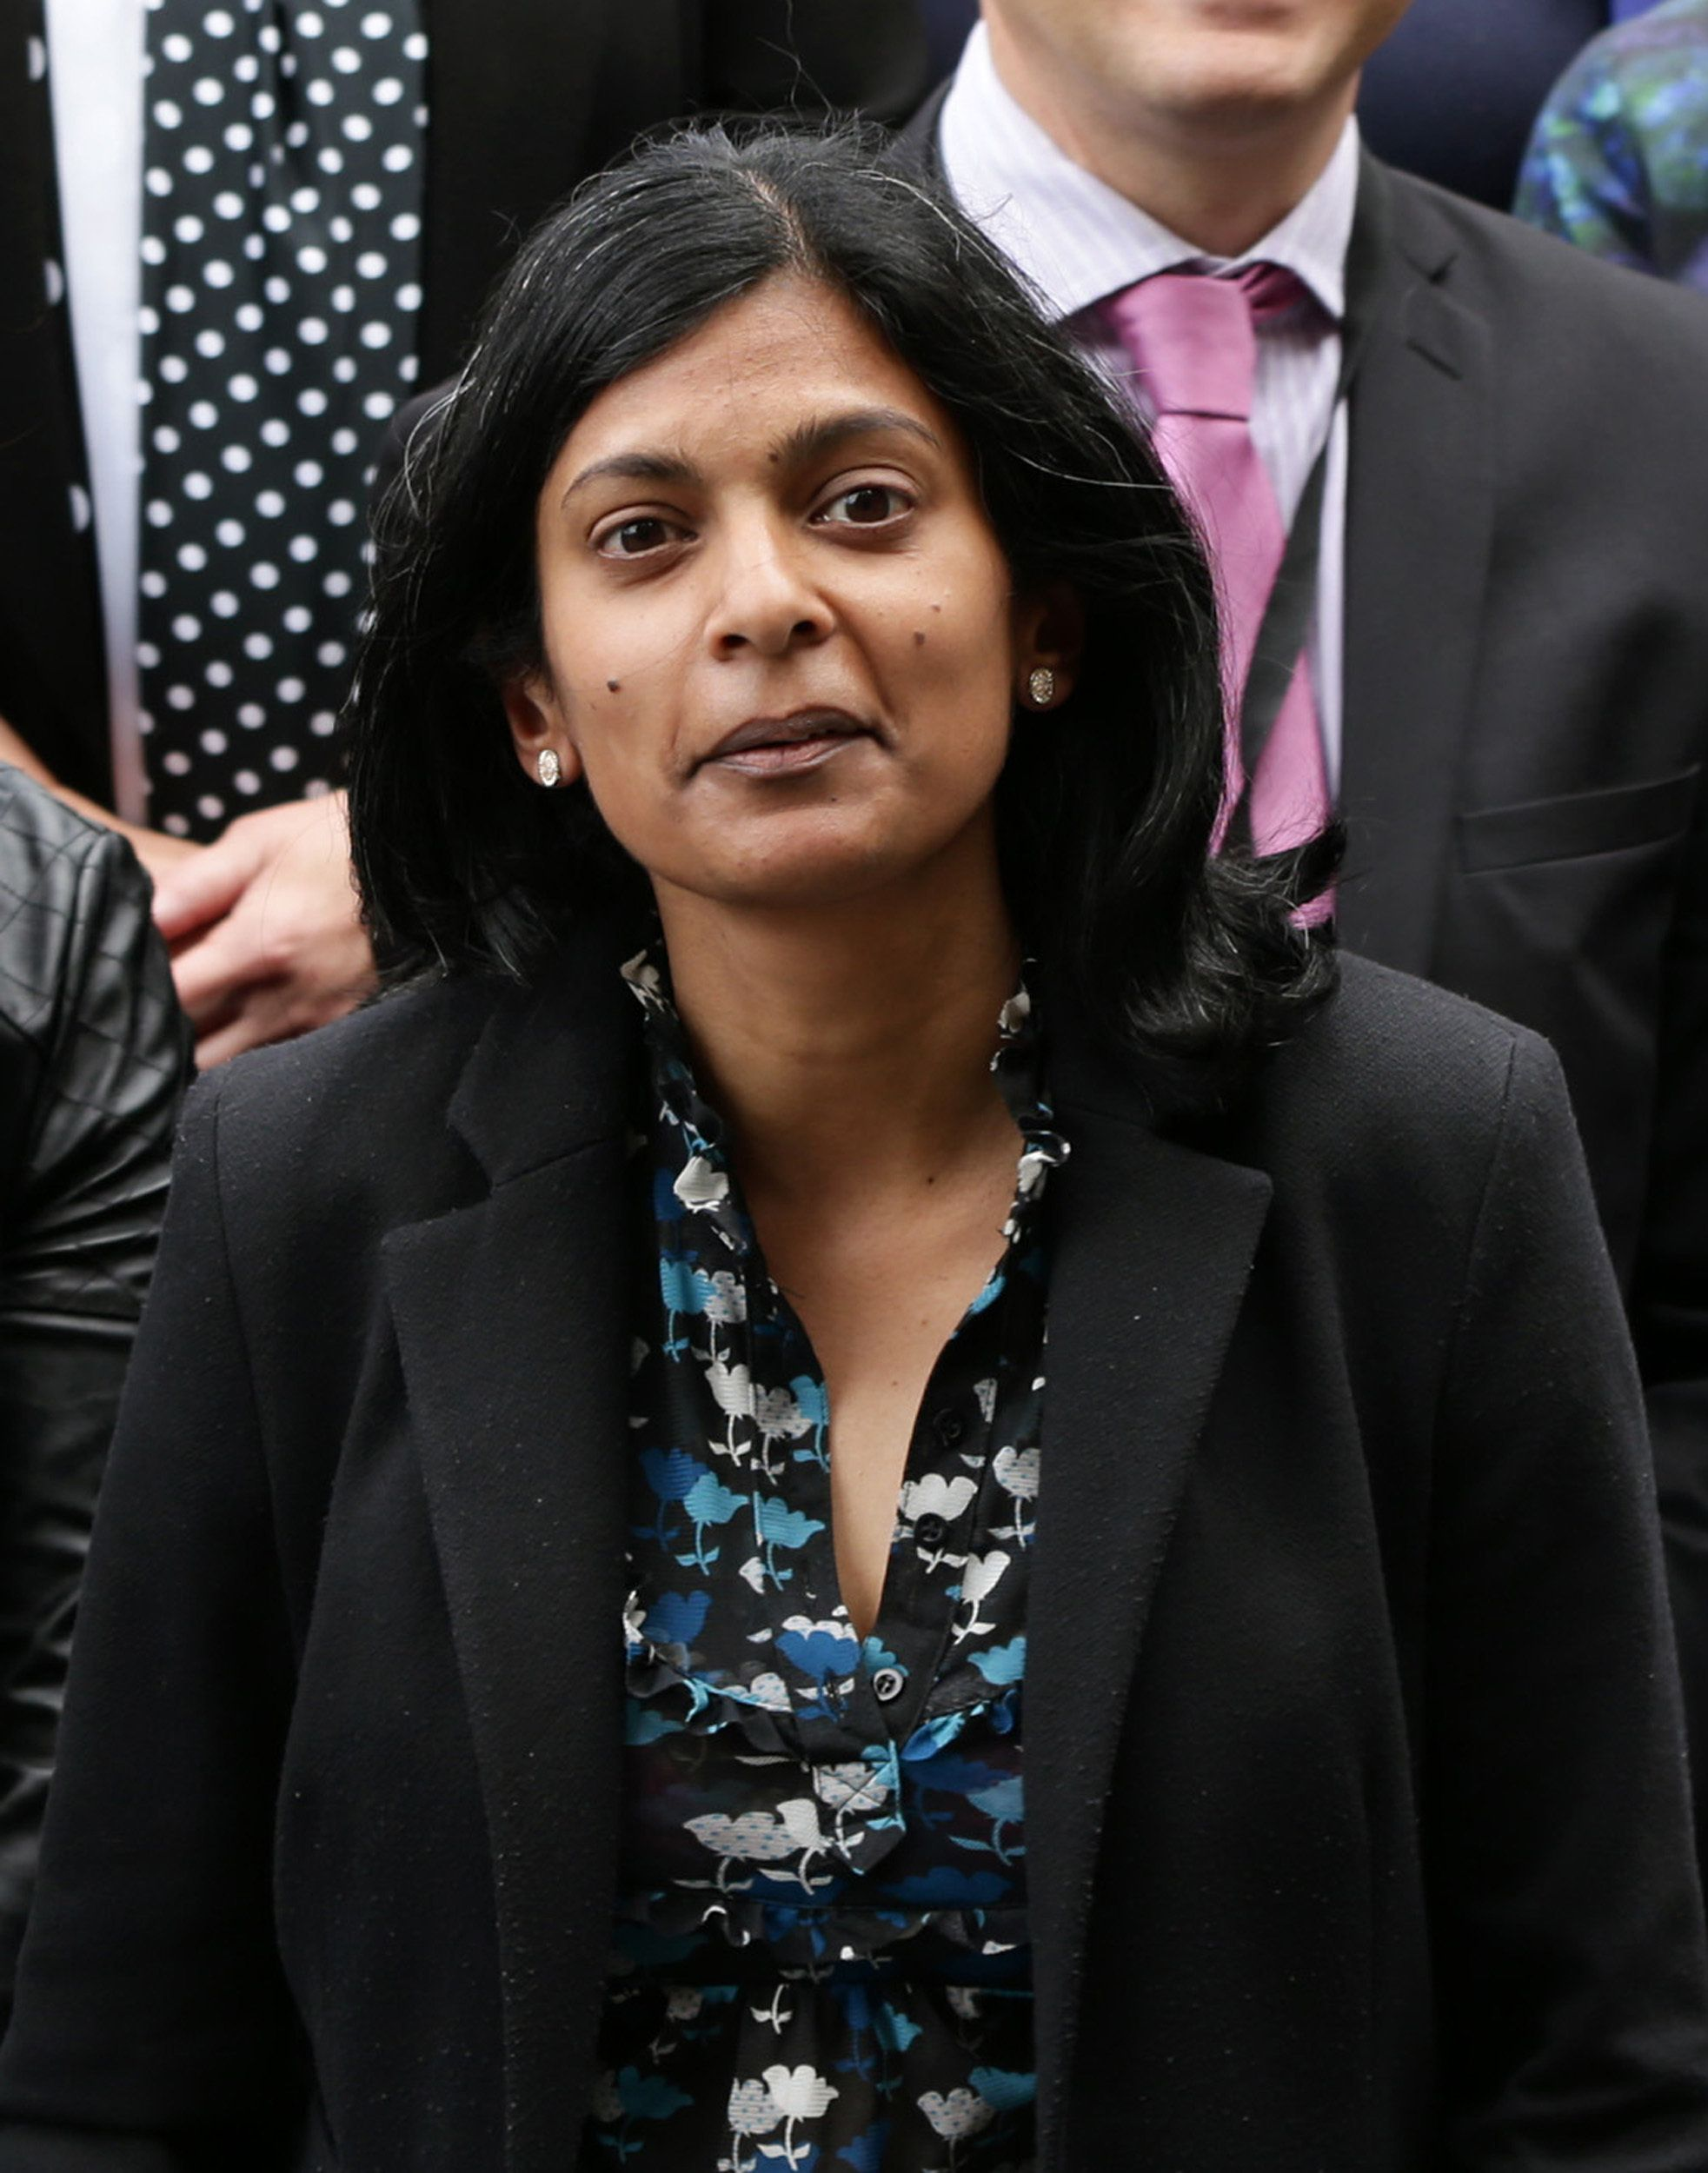 Labour MP Rupa Huq Wants A Change In The Law To Stop Protests Outside Abortion